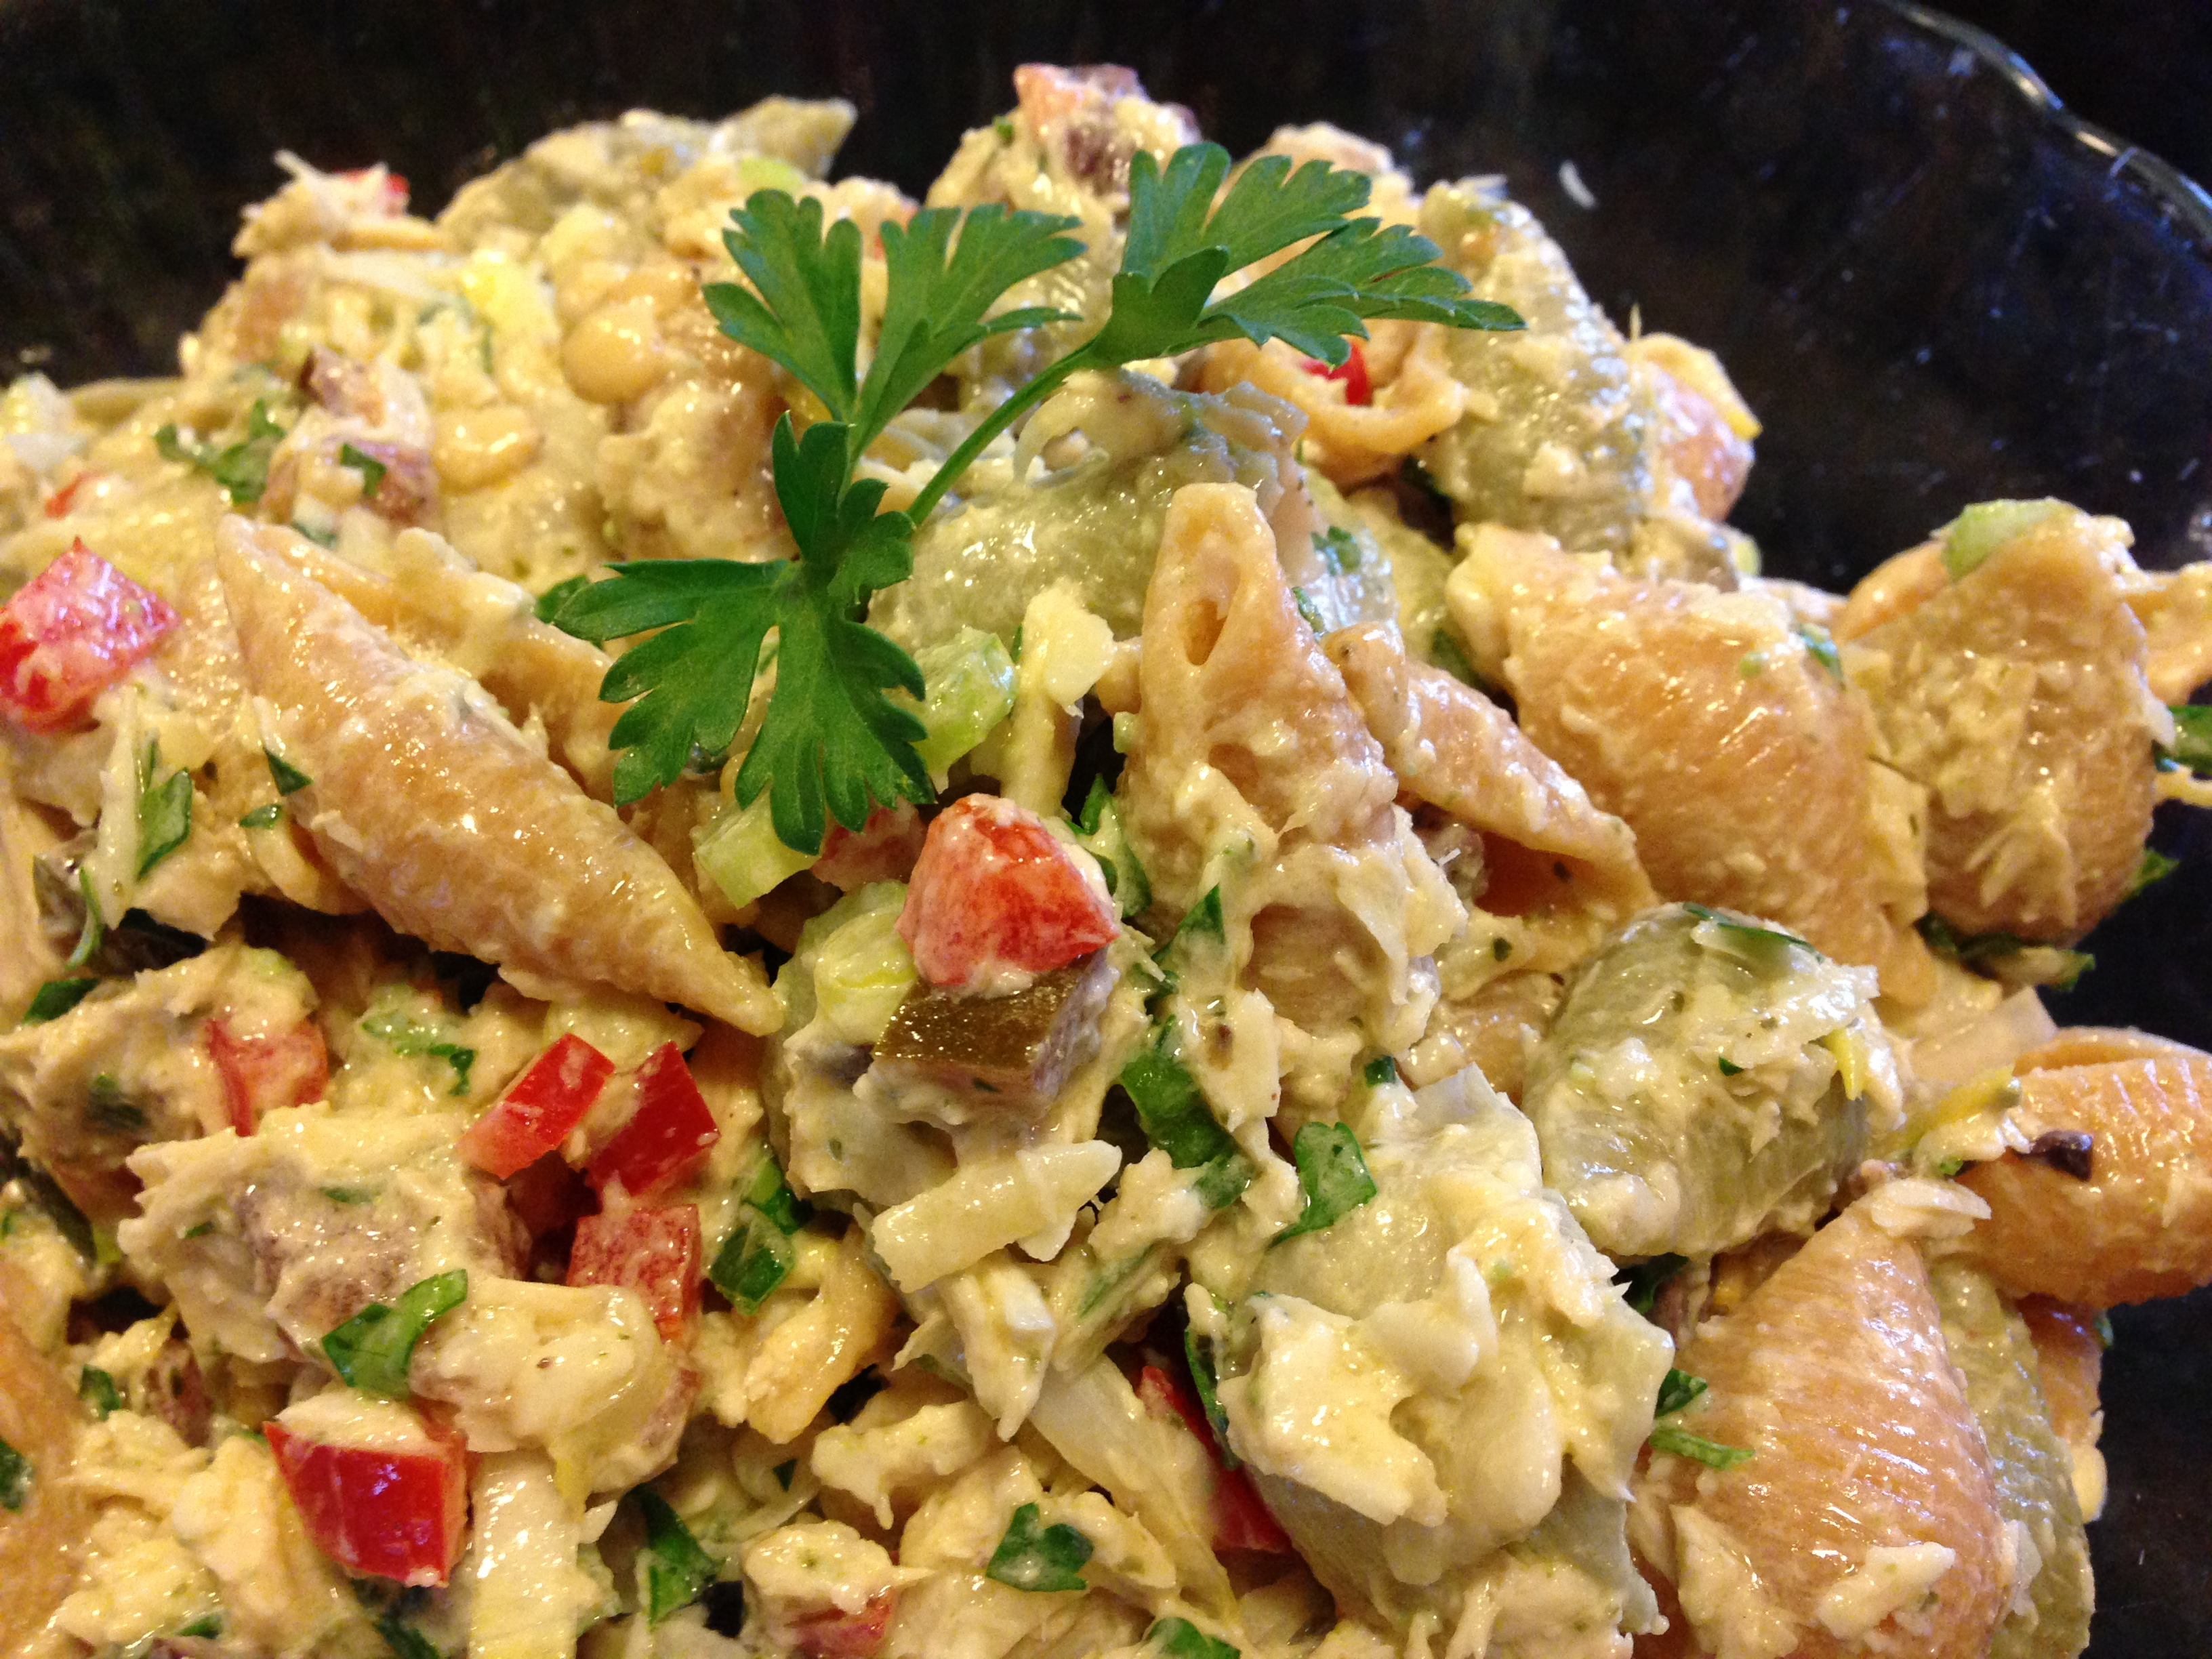 Mediterranean-Style Tuna Pasta Salad (Photo Credit: Adroit Ideals)